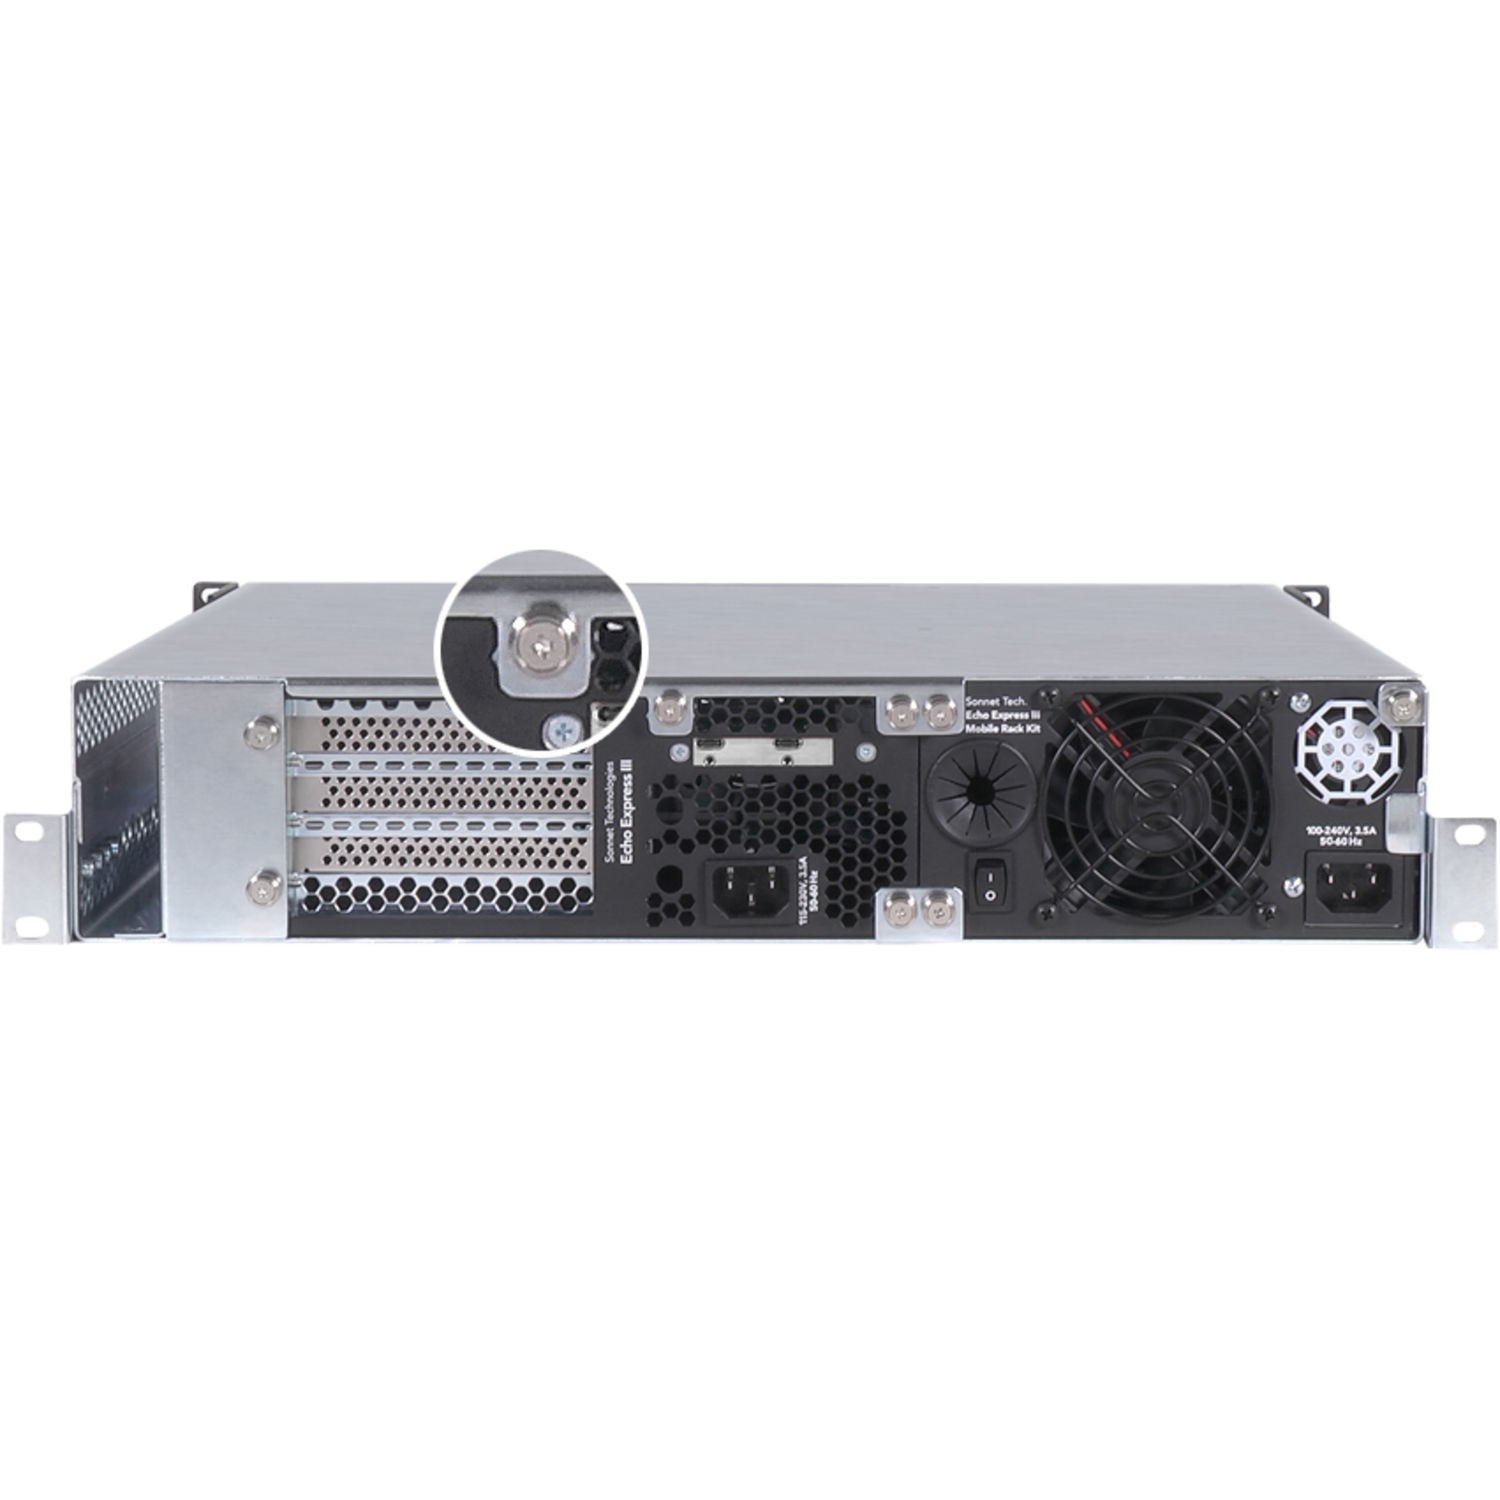 Sonnet Echo Express III-R Thunderbolt 3 Expansion Chassis for PCIe Cards, SOECEXP3FRT3